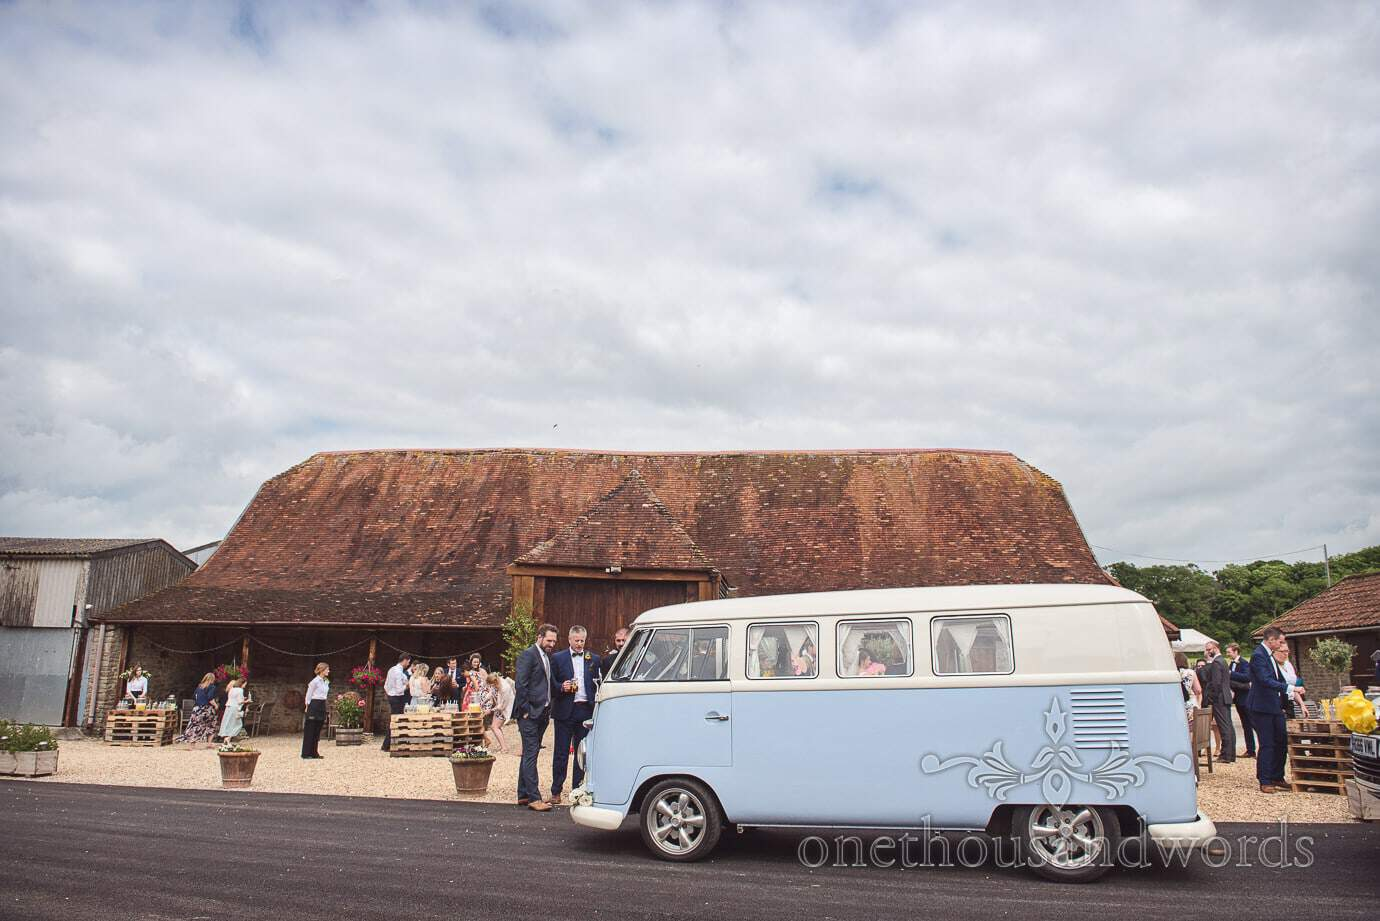 Stockbridge Farm Barn rustic wedding venue in Dorset with classic VW split screen van